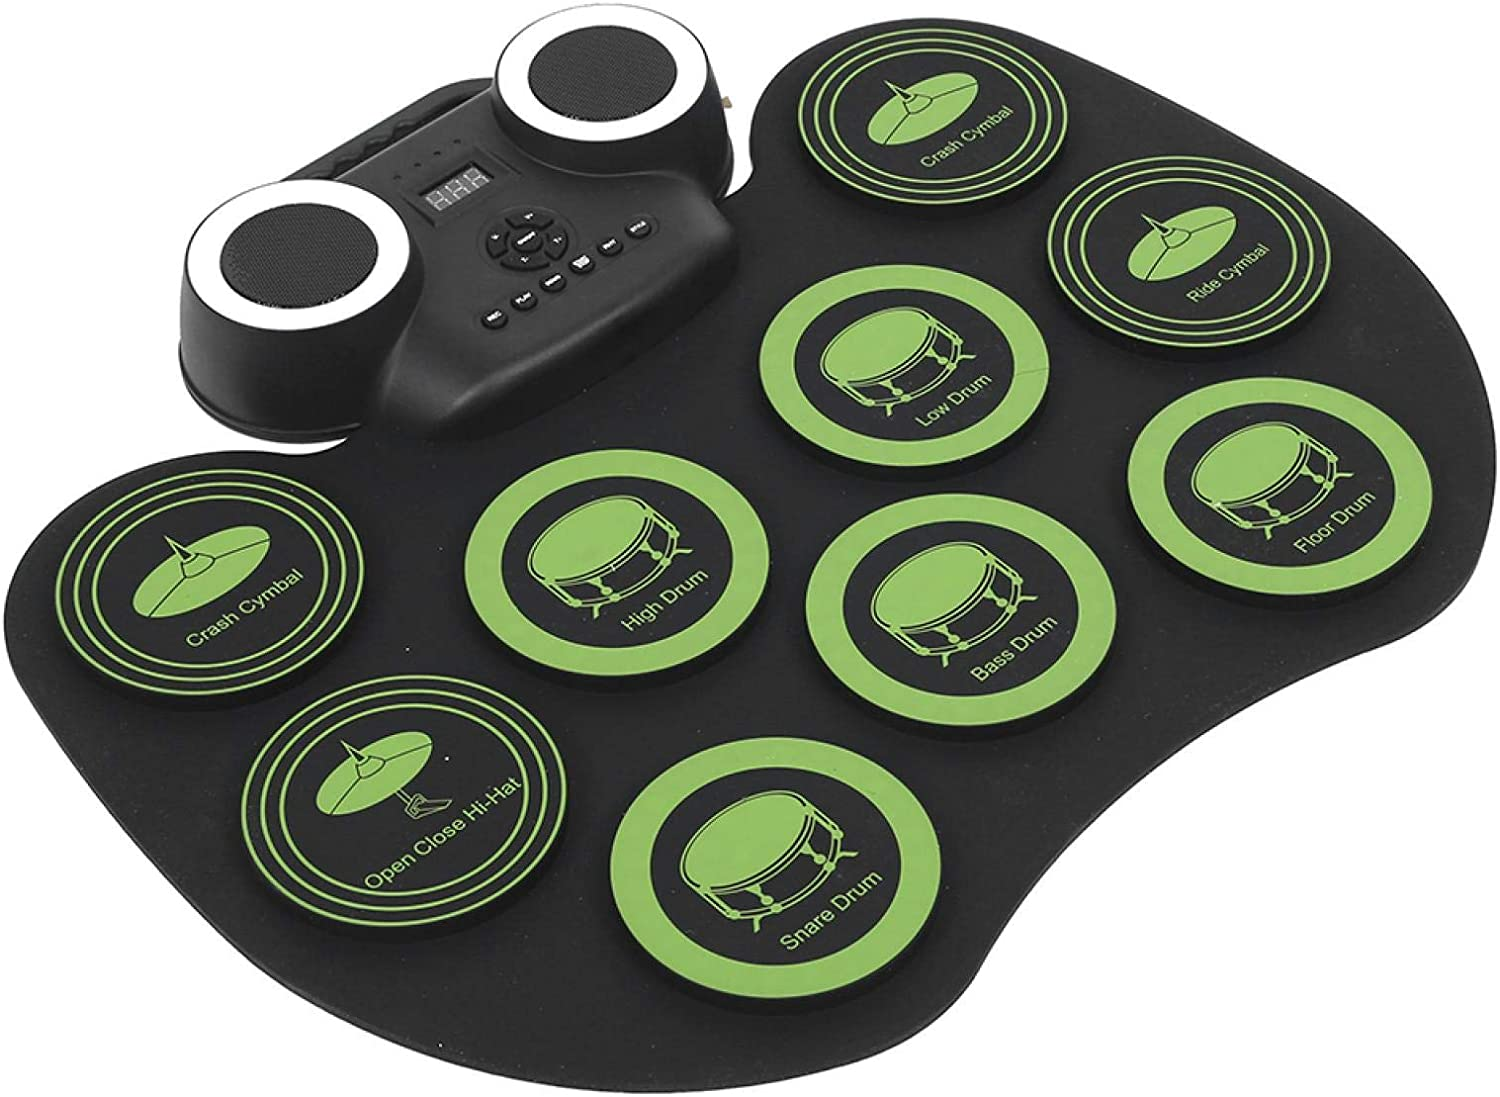 Electronic Max 55% OFF Drum National products Set Pad Type‑C USB Interface